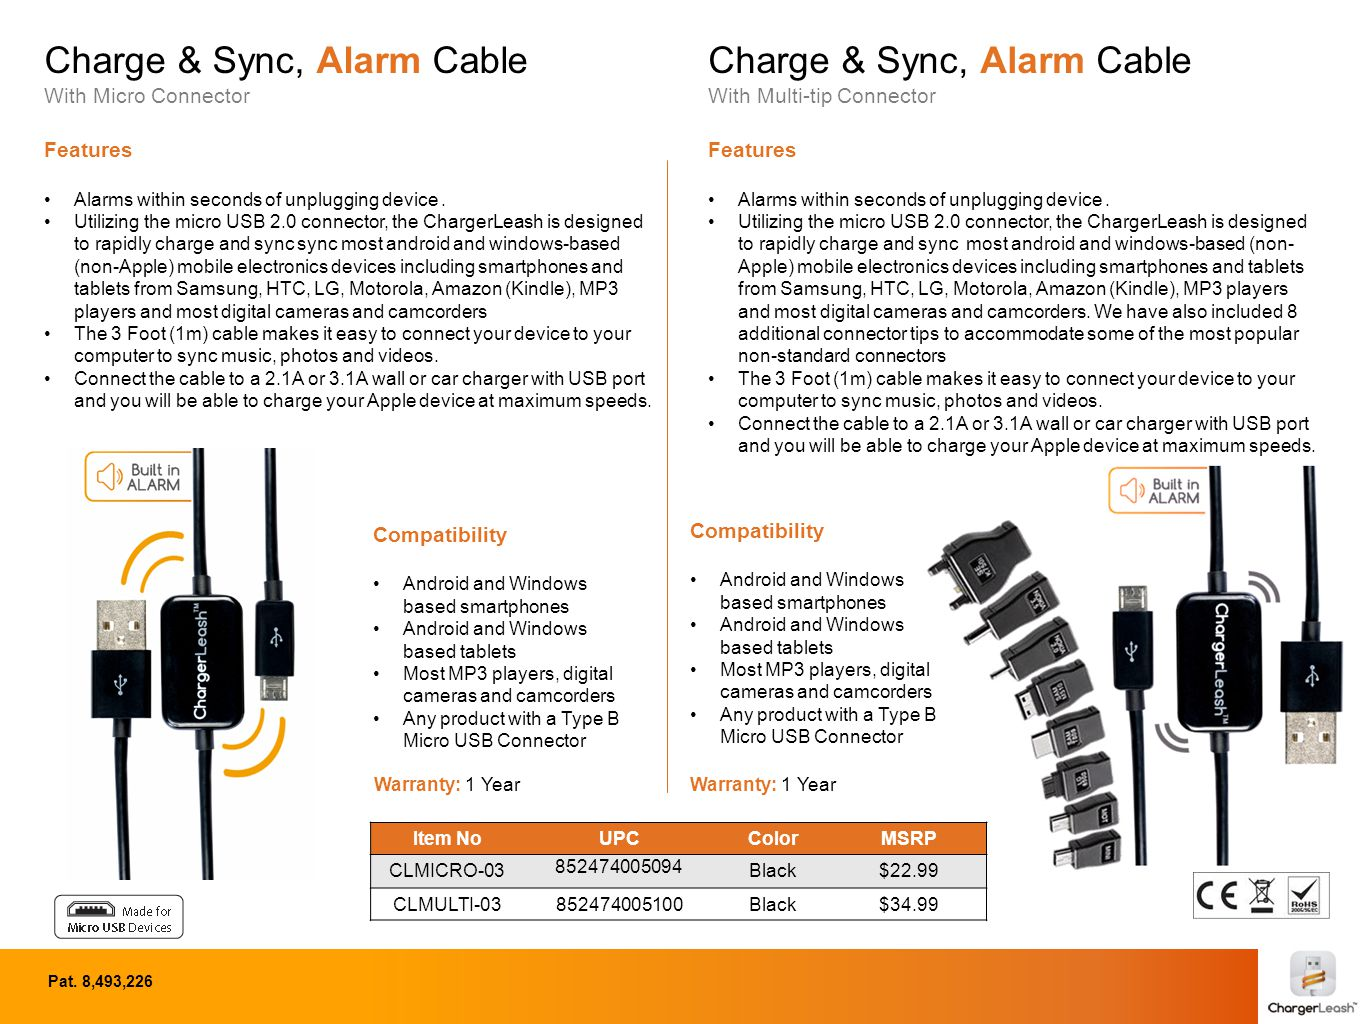 Charge & Sync, Alarm Cable With Micro Connector Features Alarms within seconds of unplugging device.